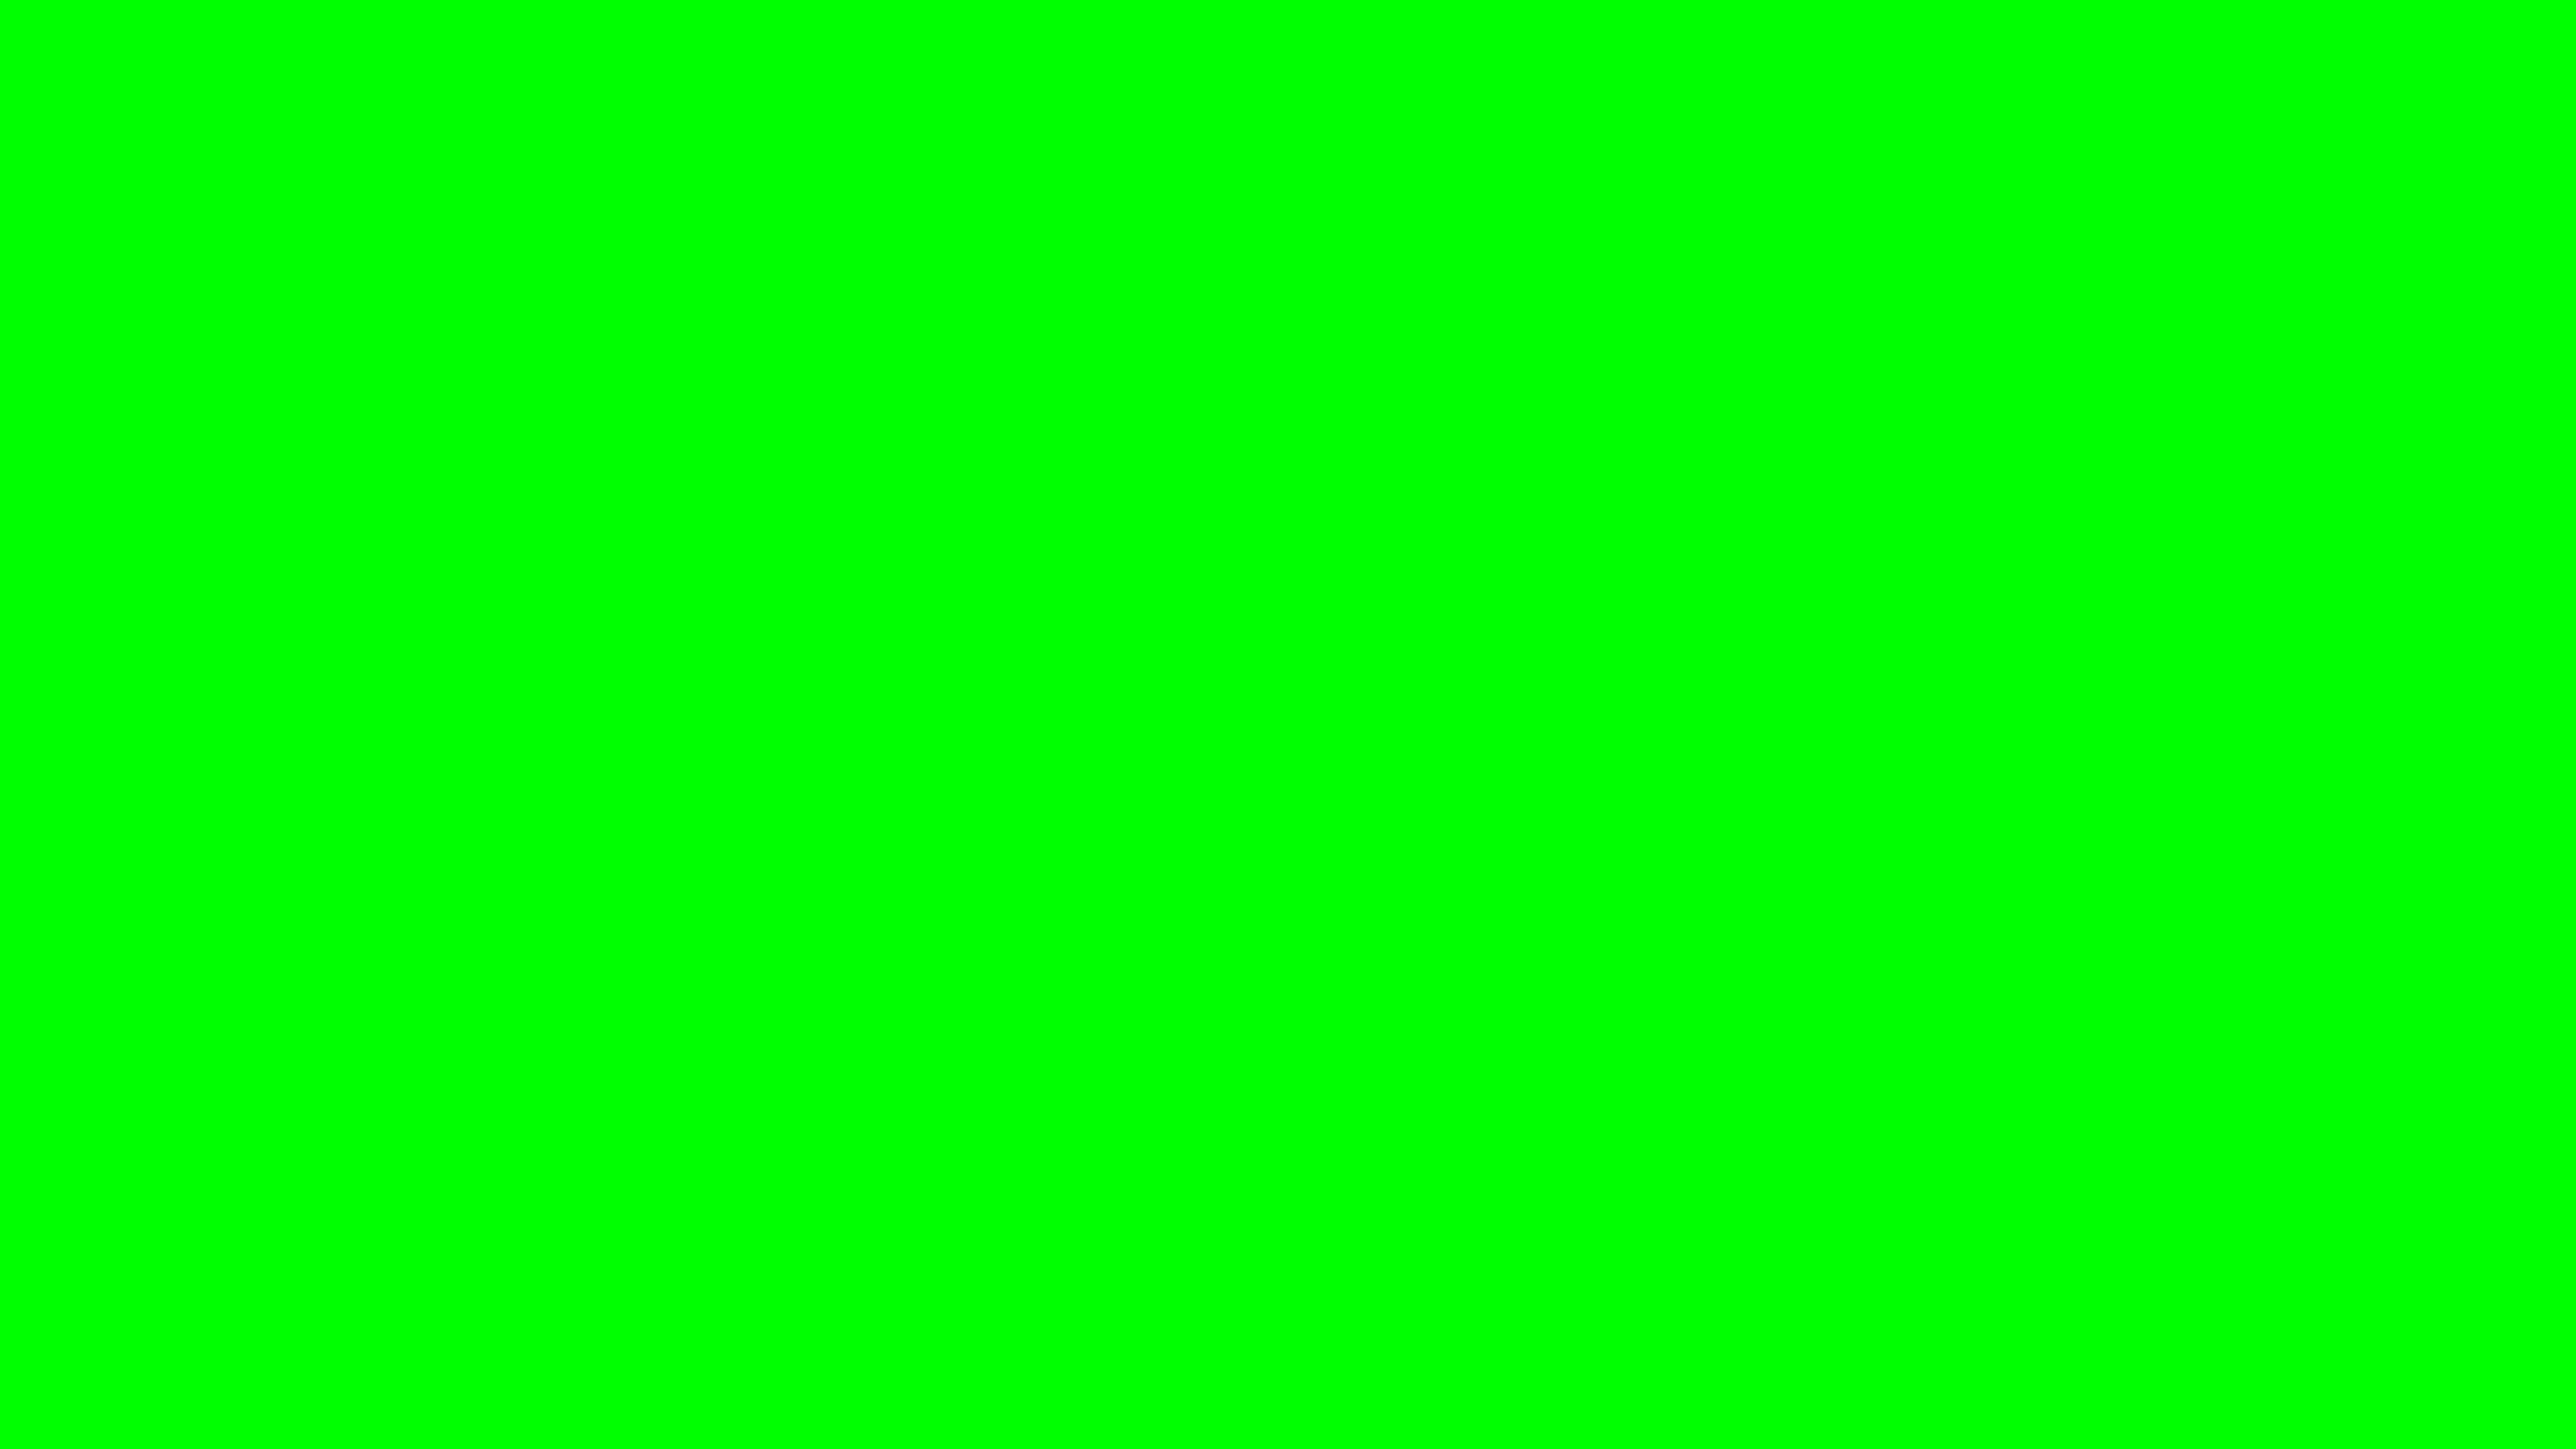 4096x2304 Green X11 Gui Green Solid Color Background